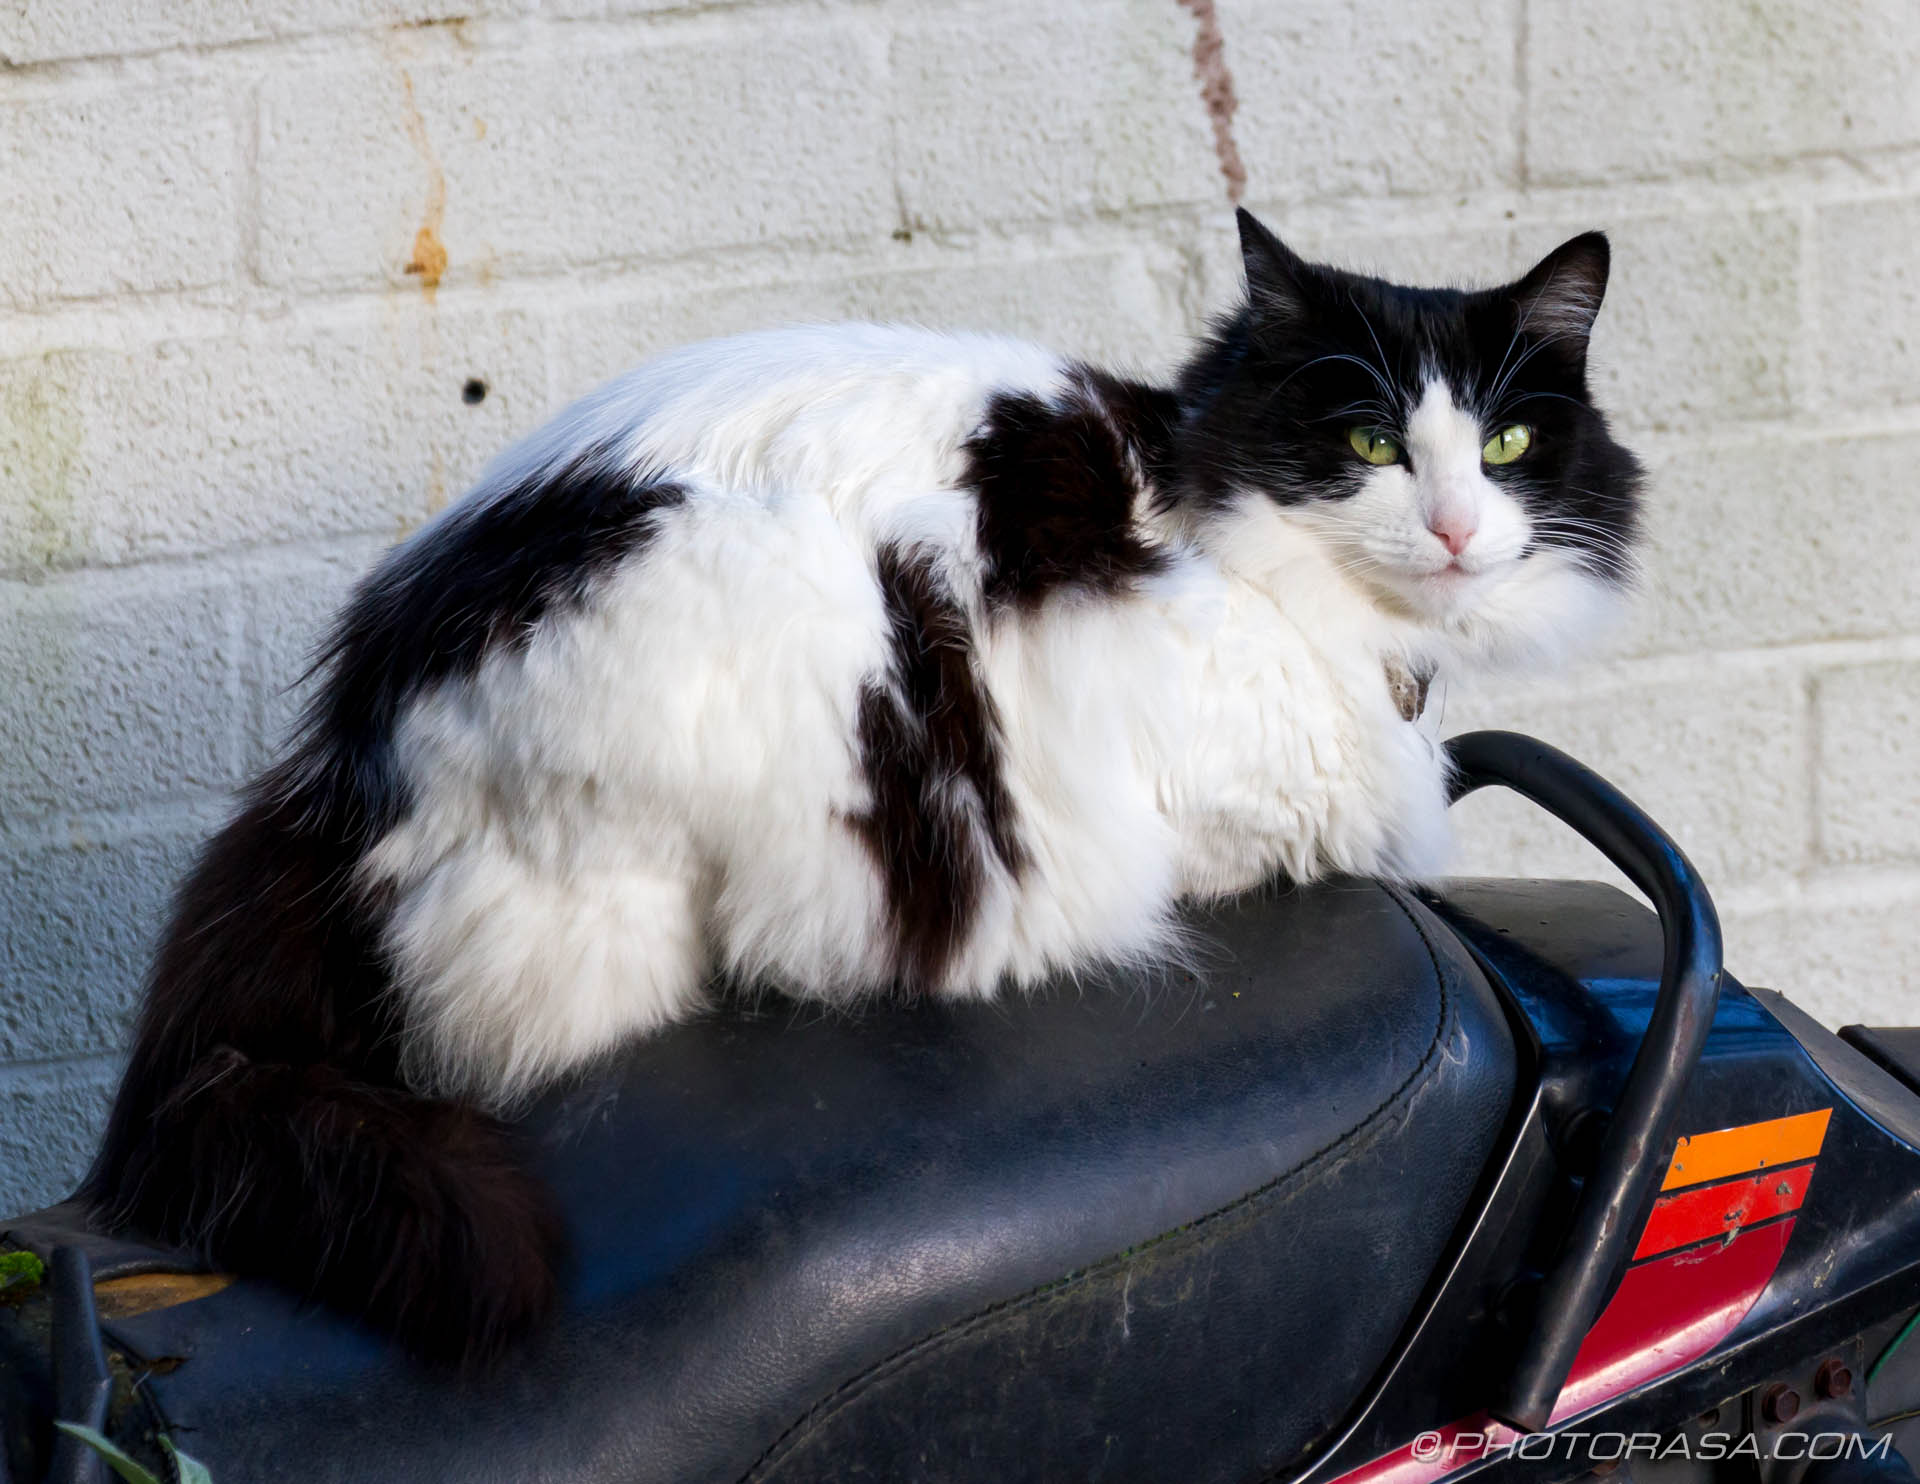 http://photorasa.com/black-white-cats/white-black-cat-on-bike-seat/